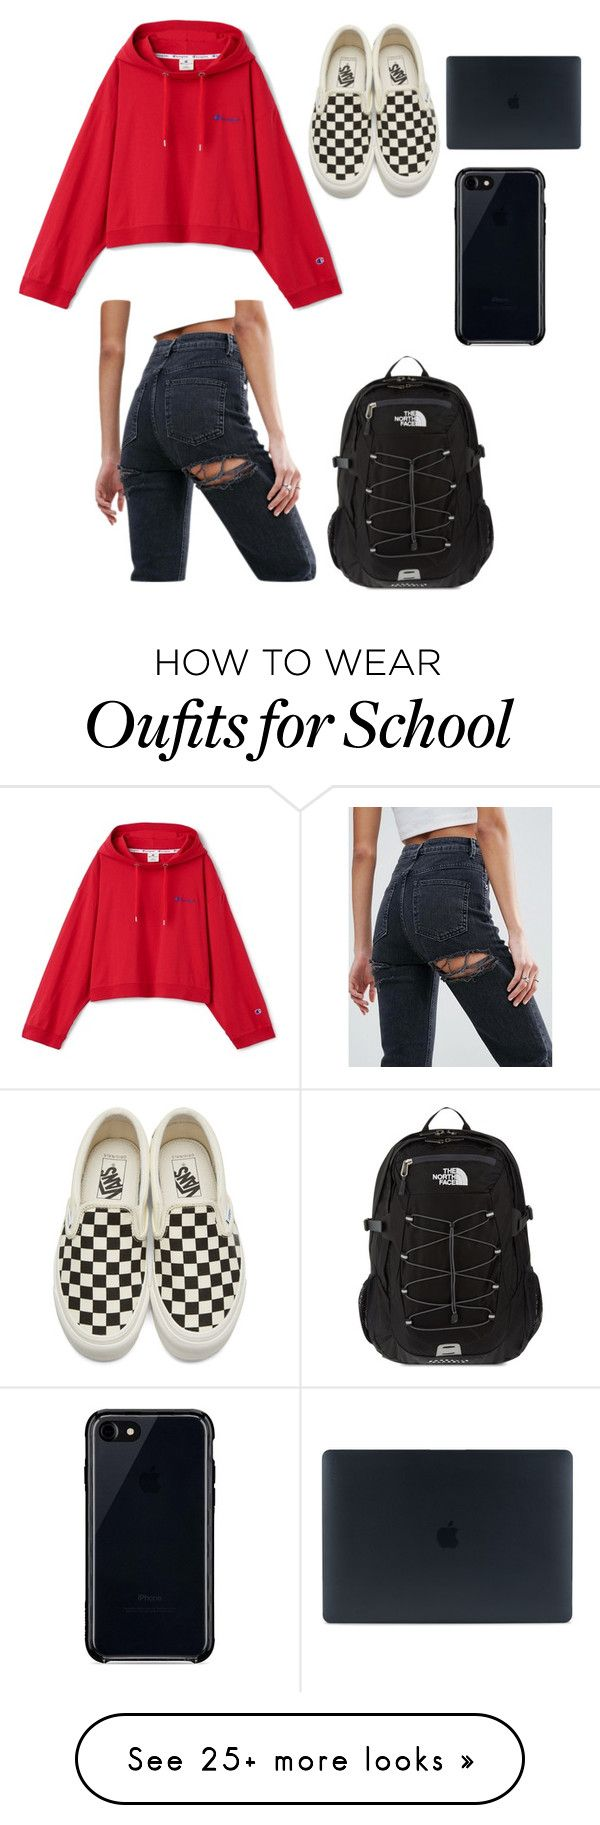 """School"" by kpescobar on Polyvore featuring Vans, ASOS, The North Face and Belkin"